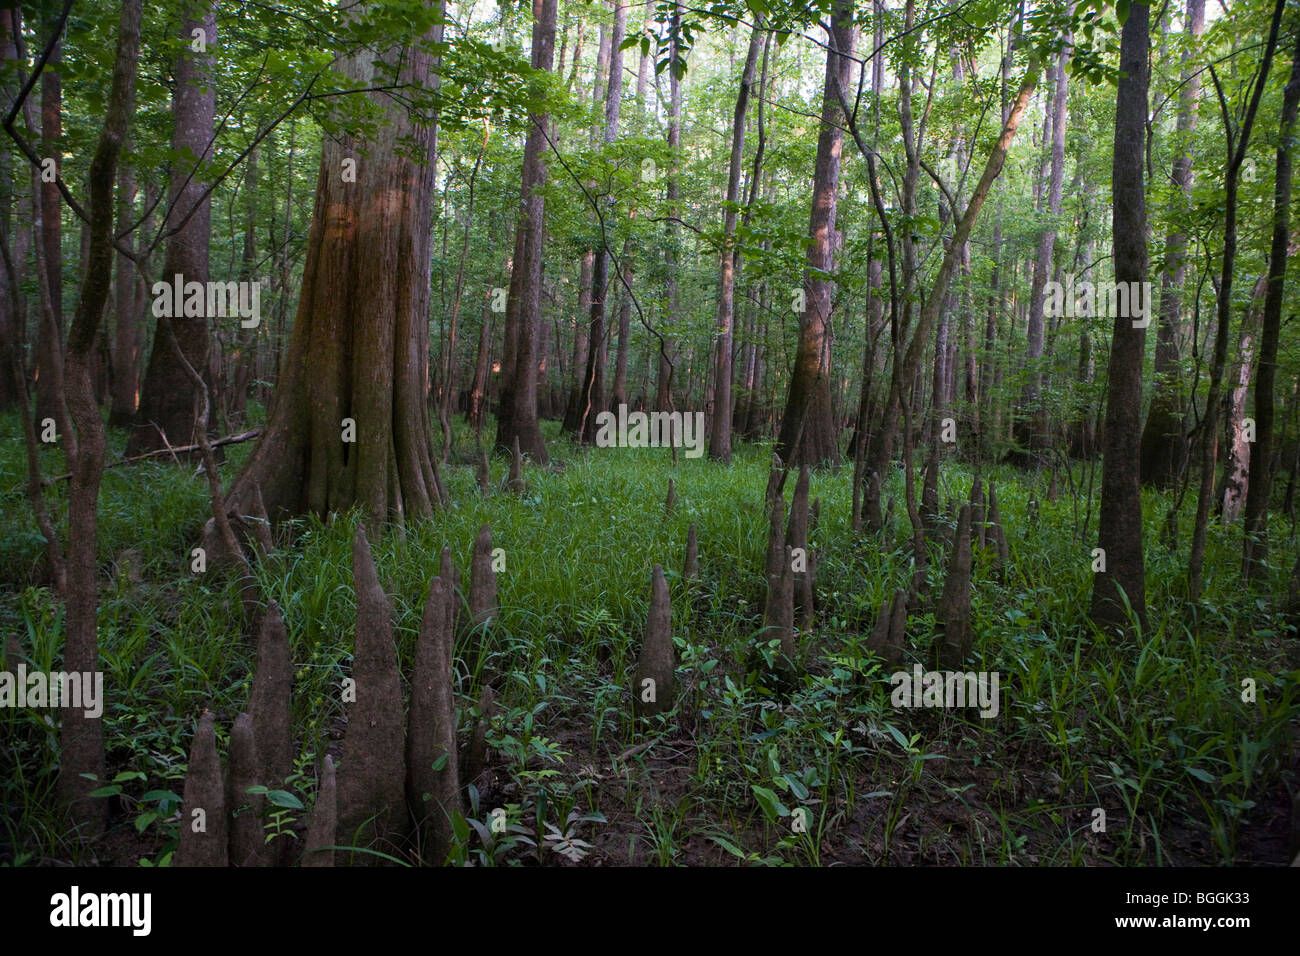 Trees and forest undergrowth, Congaree National Park, near Columbia, South Carolina. - Stock Image